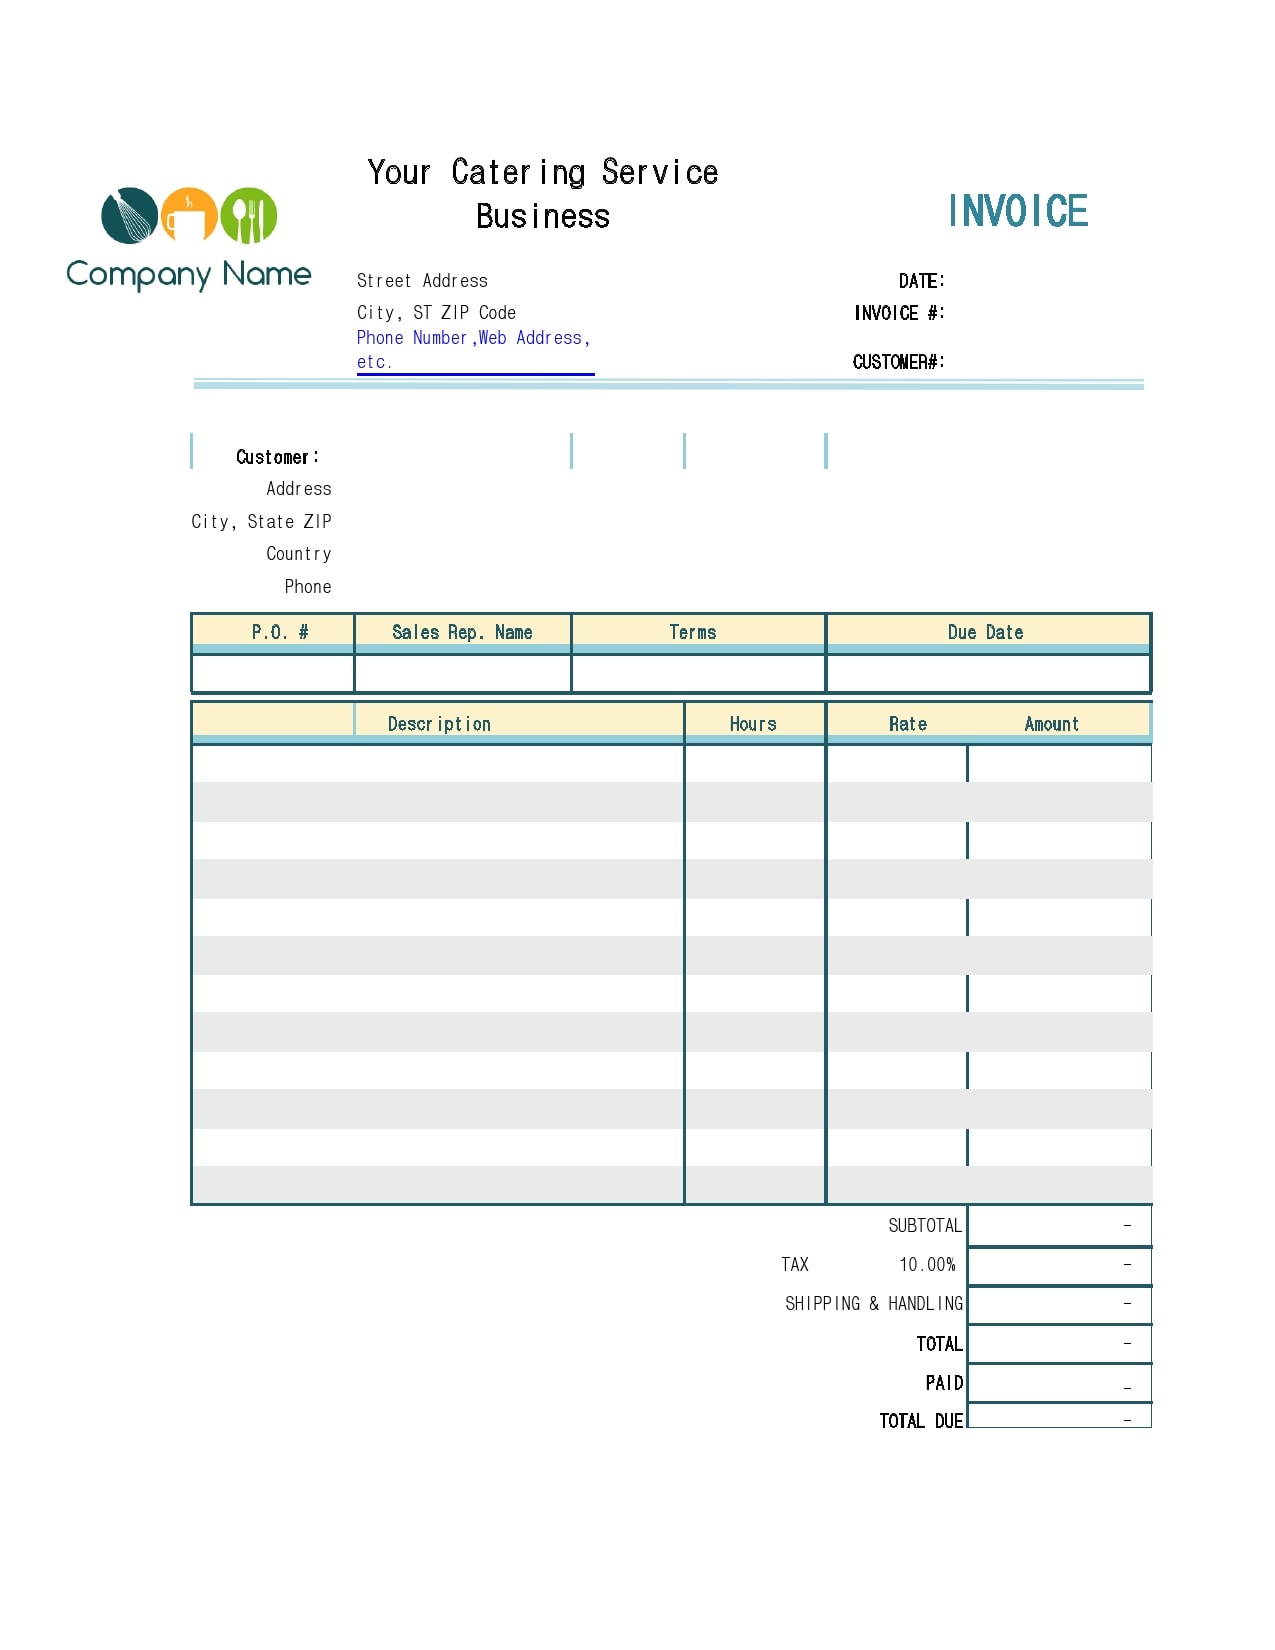 catering invoice 21